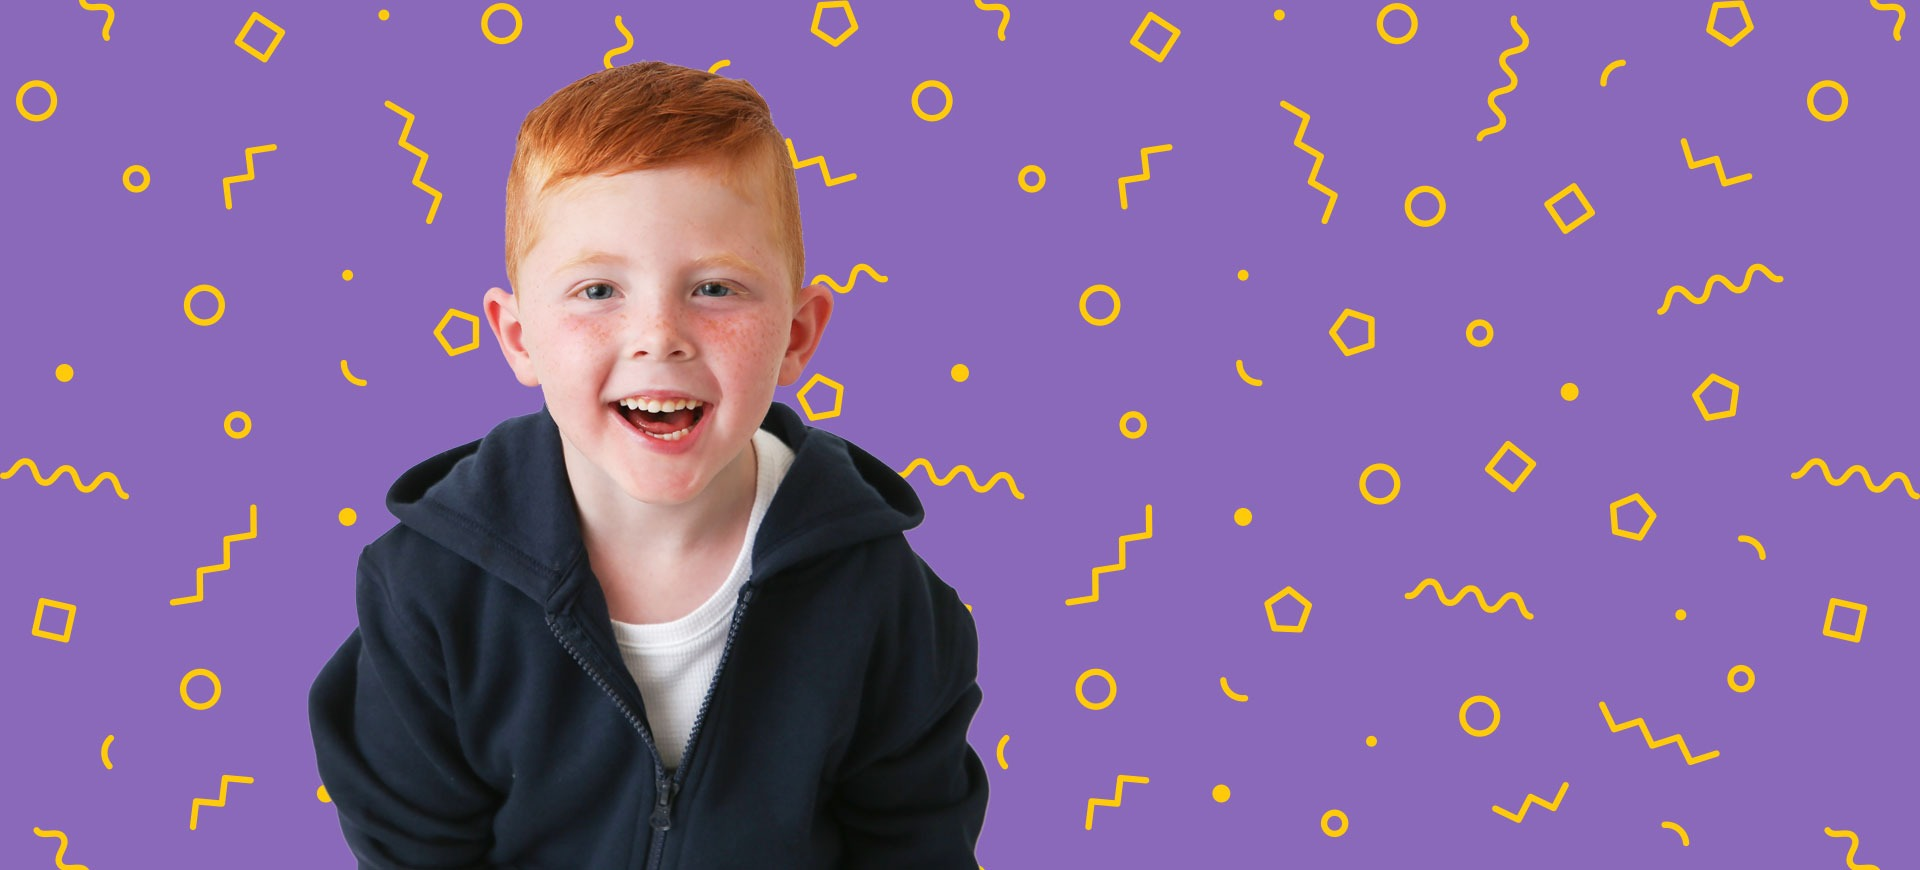 Champion Ryland on purple background